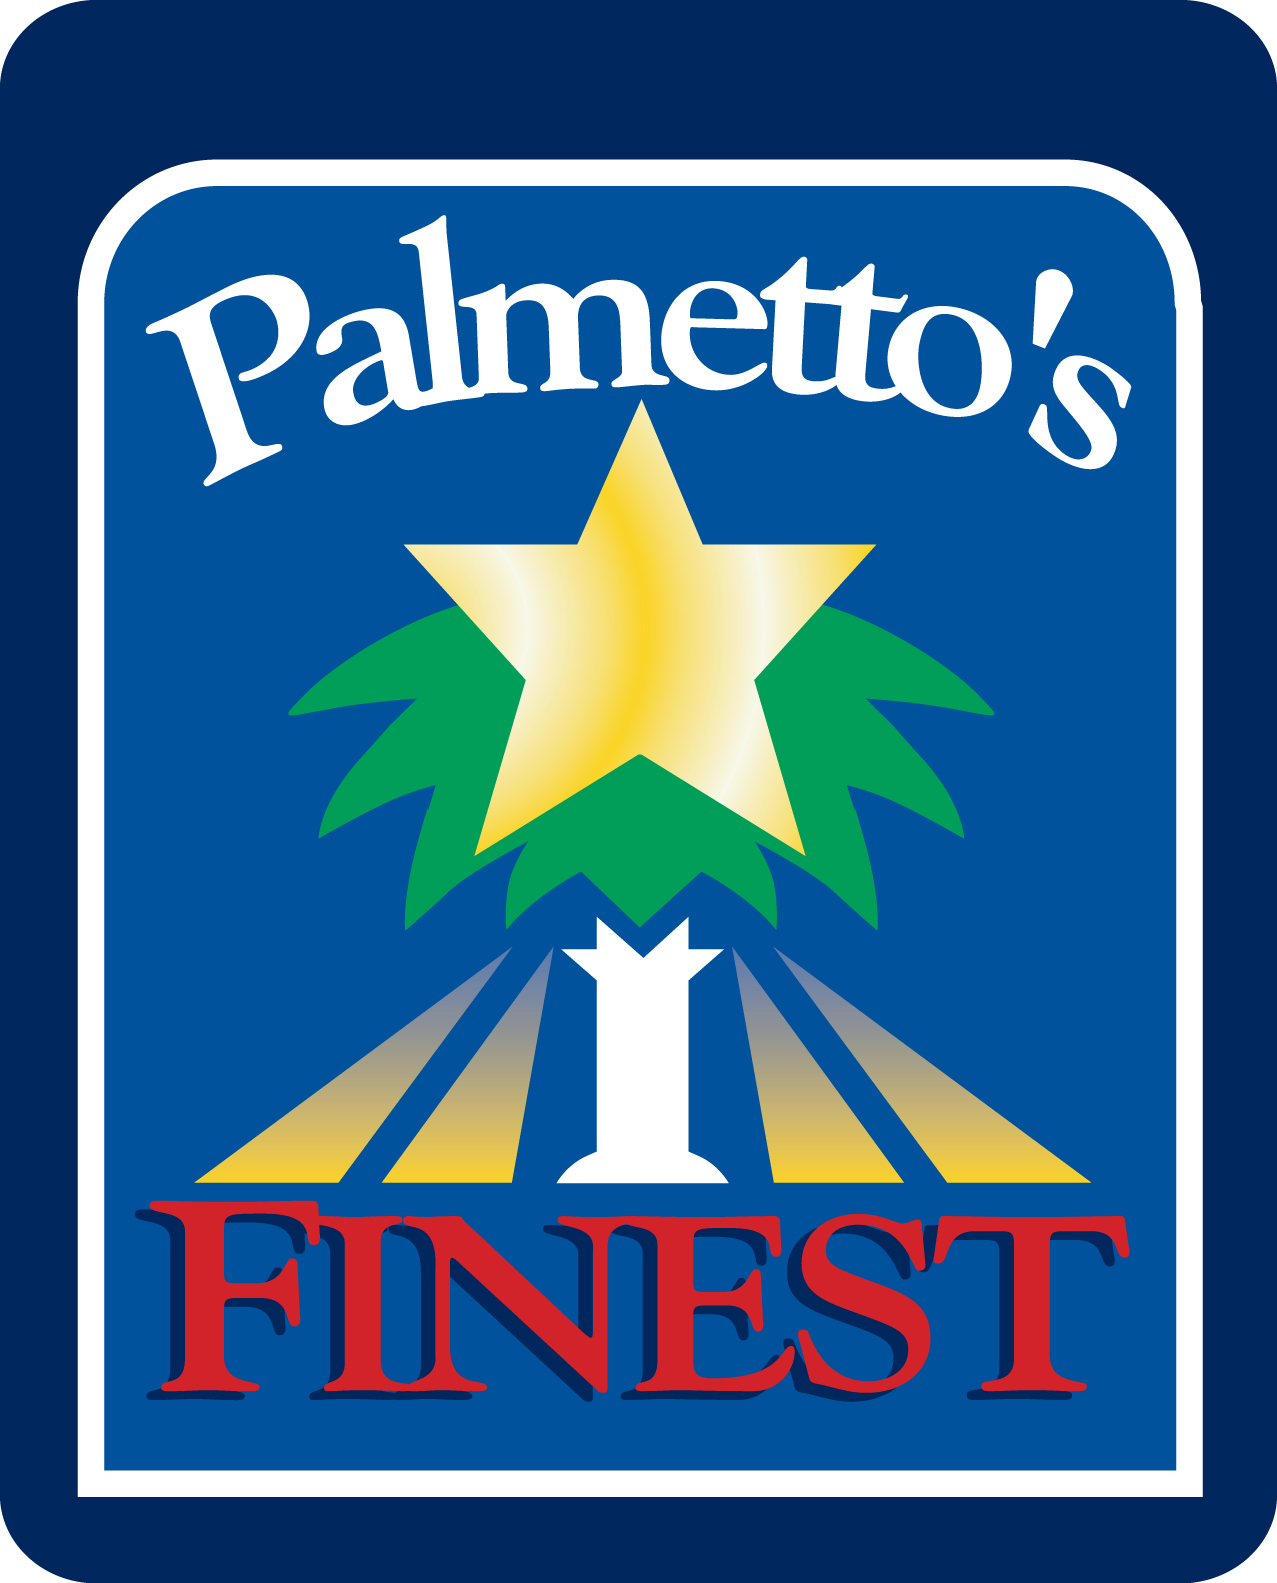 Palmetto's Finest Logo